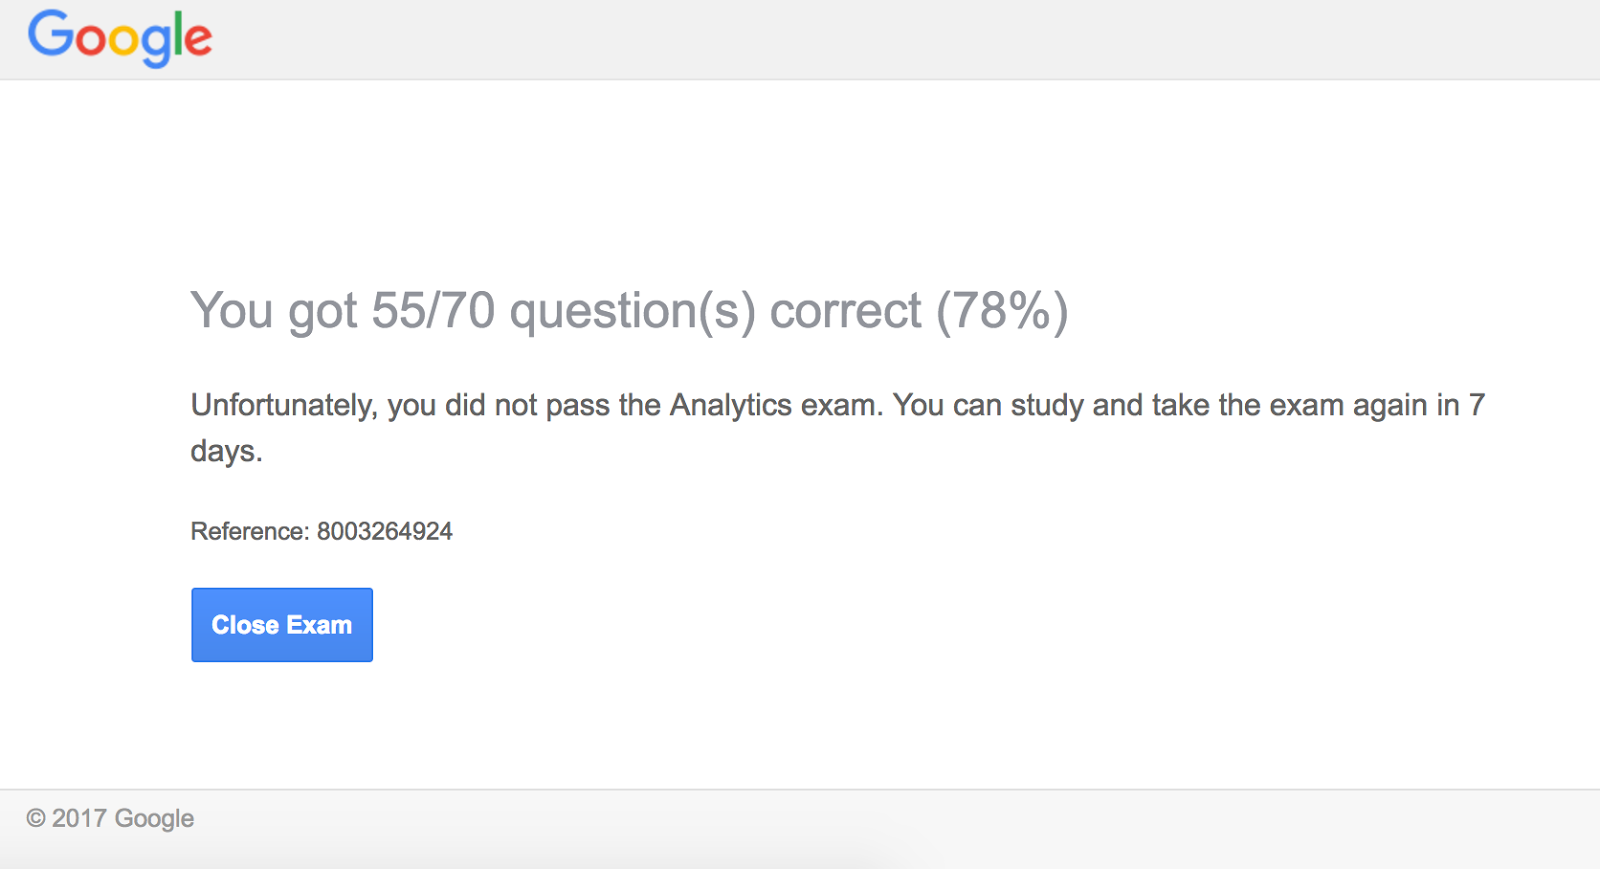 Free google analytics certification this is how to get it to further support you in getting the google analytics free certification this post details my study notes 1betcityfo Image collections